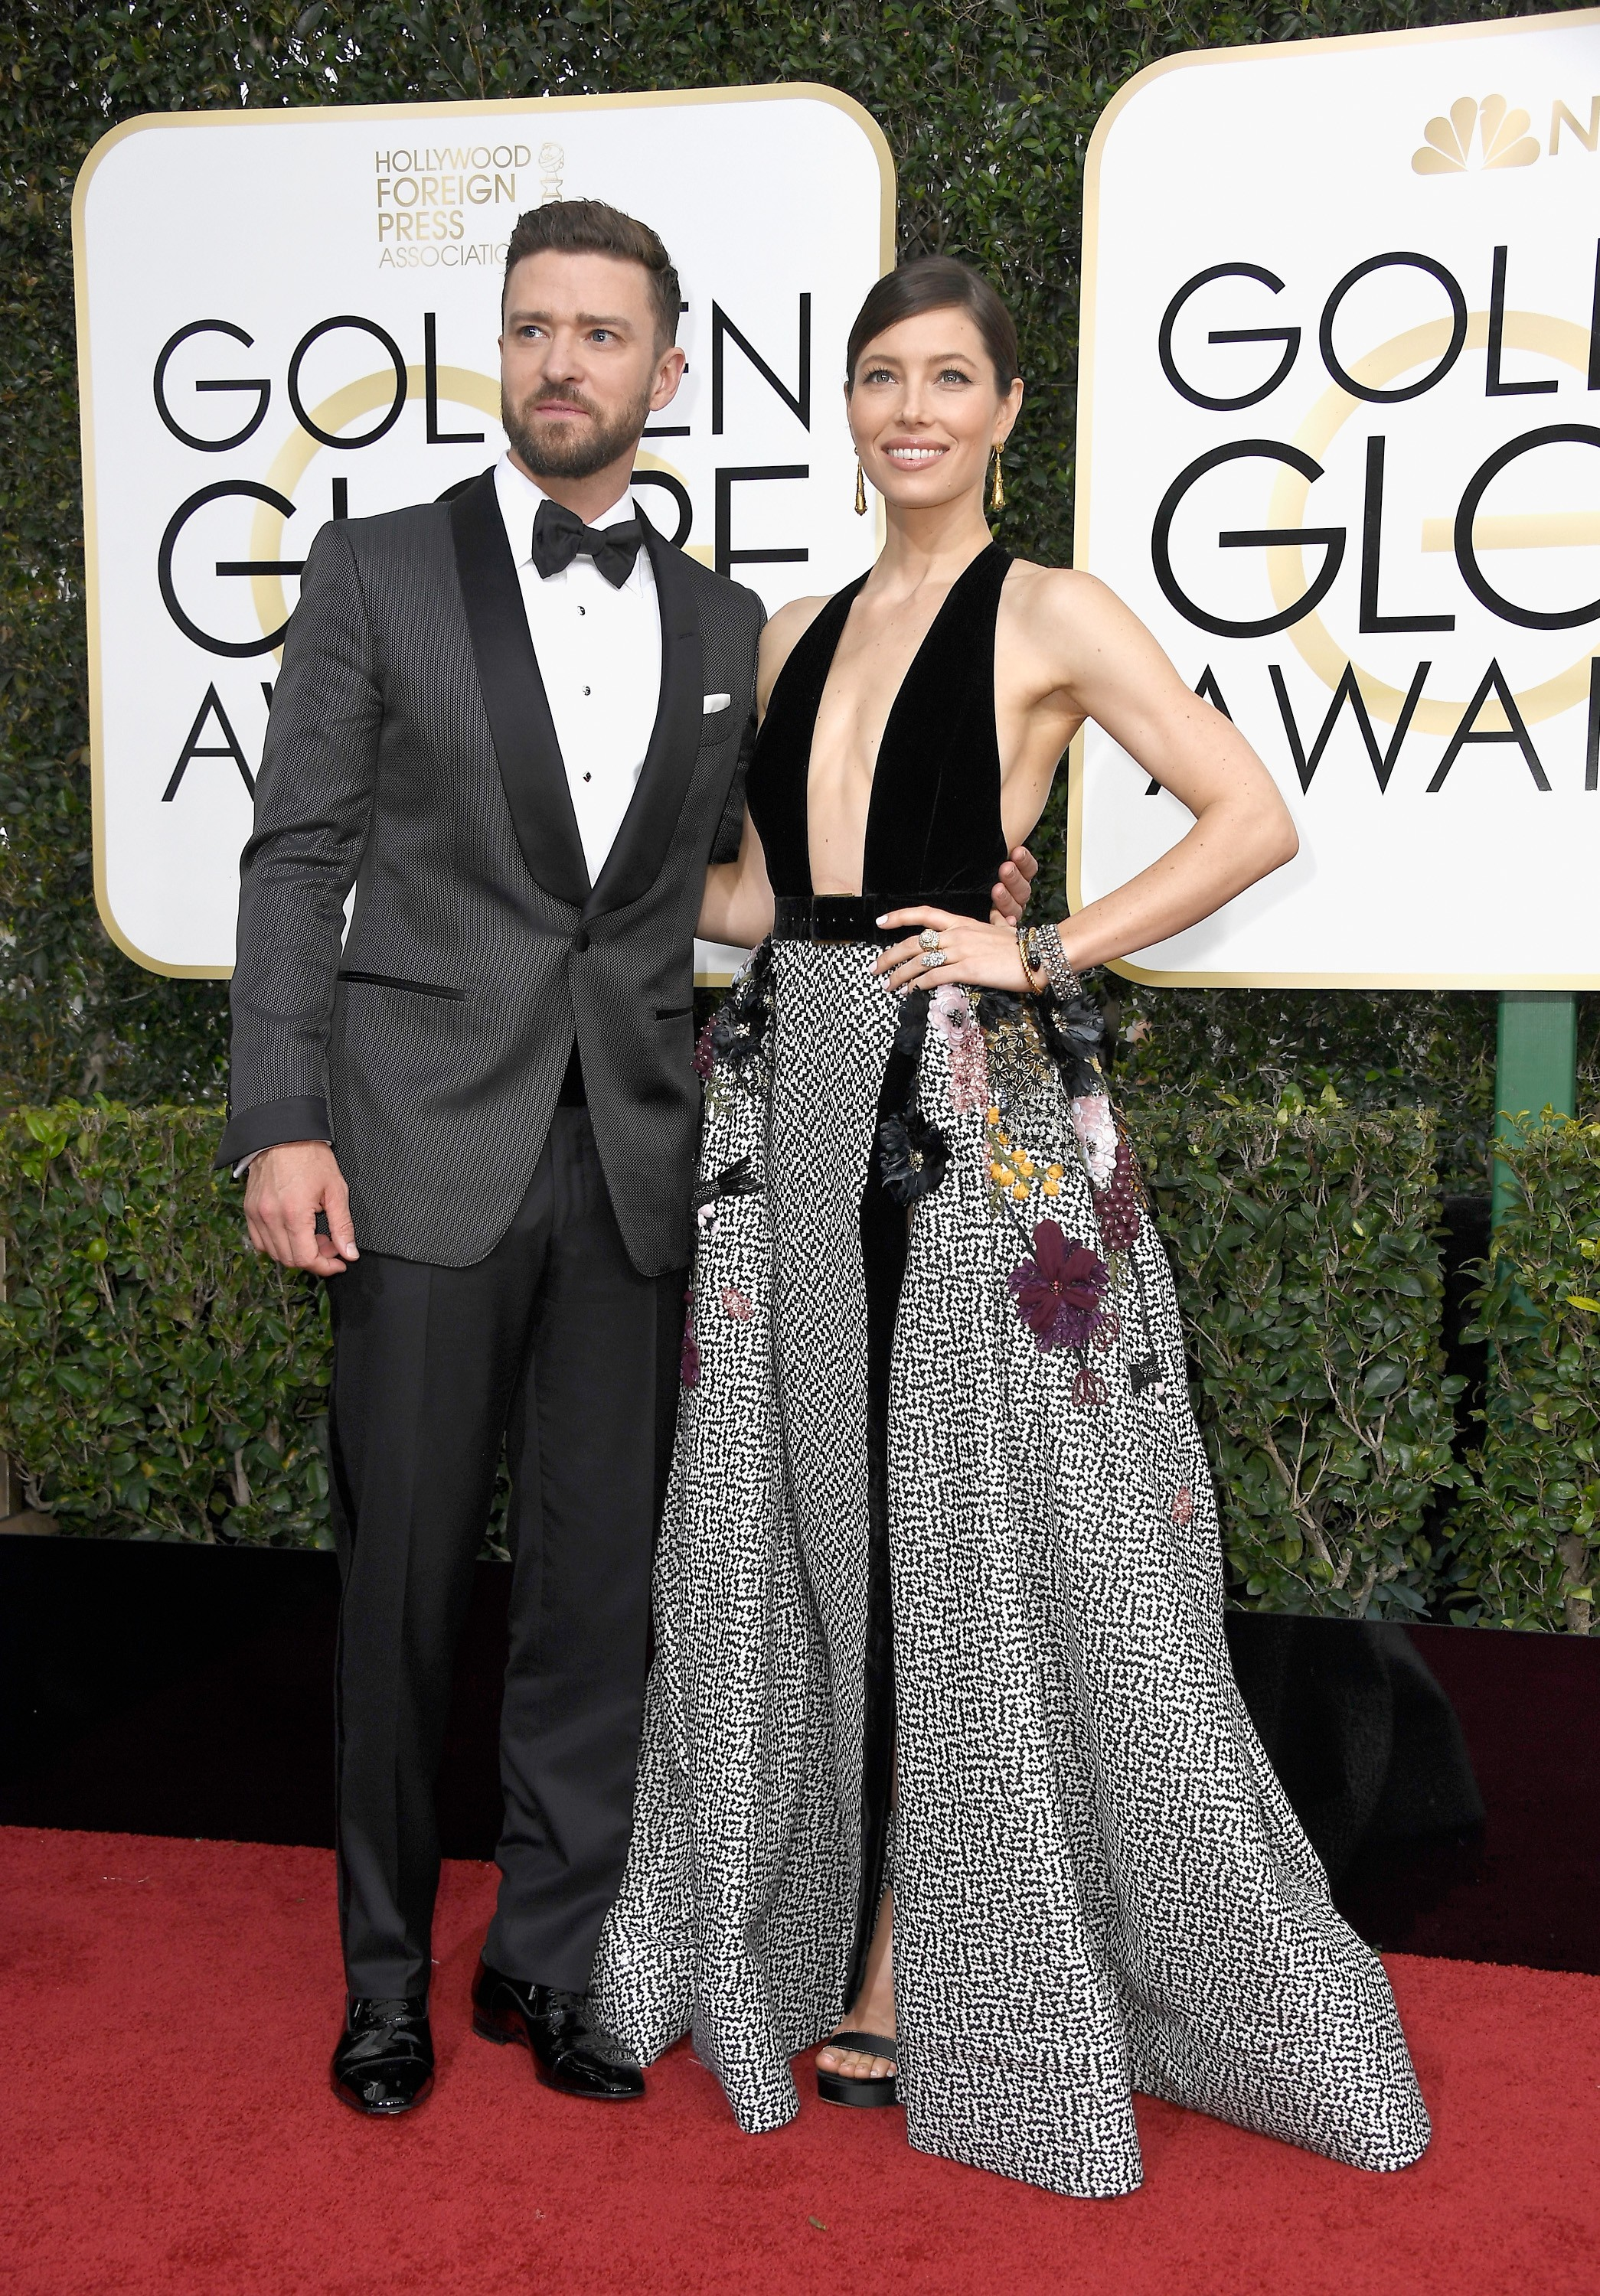 BEVERLY HILLS, CA - JANUARY 08:  Singer/actor Justin Timberlake (L) and actress Jessica Biel attend the 74th Annual Golden Globe Awards at The Beverly Hilton Hotel on January 8, 2017 in Beverly Hills, California.  (Photo by Frazer Harrison/Getty Images) (Foto: Getty Images)